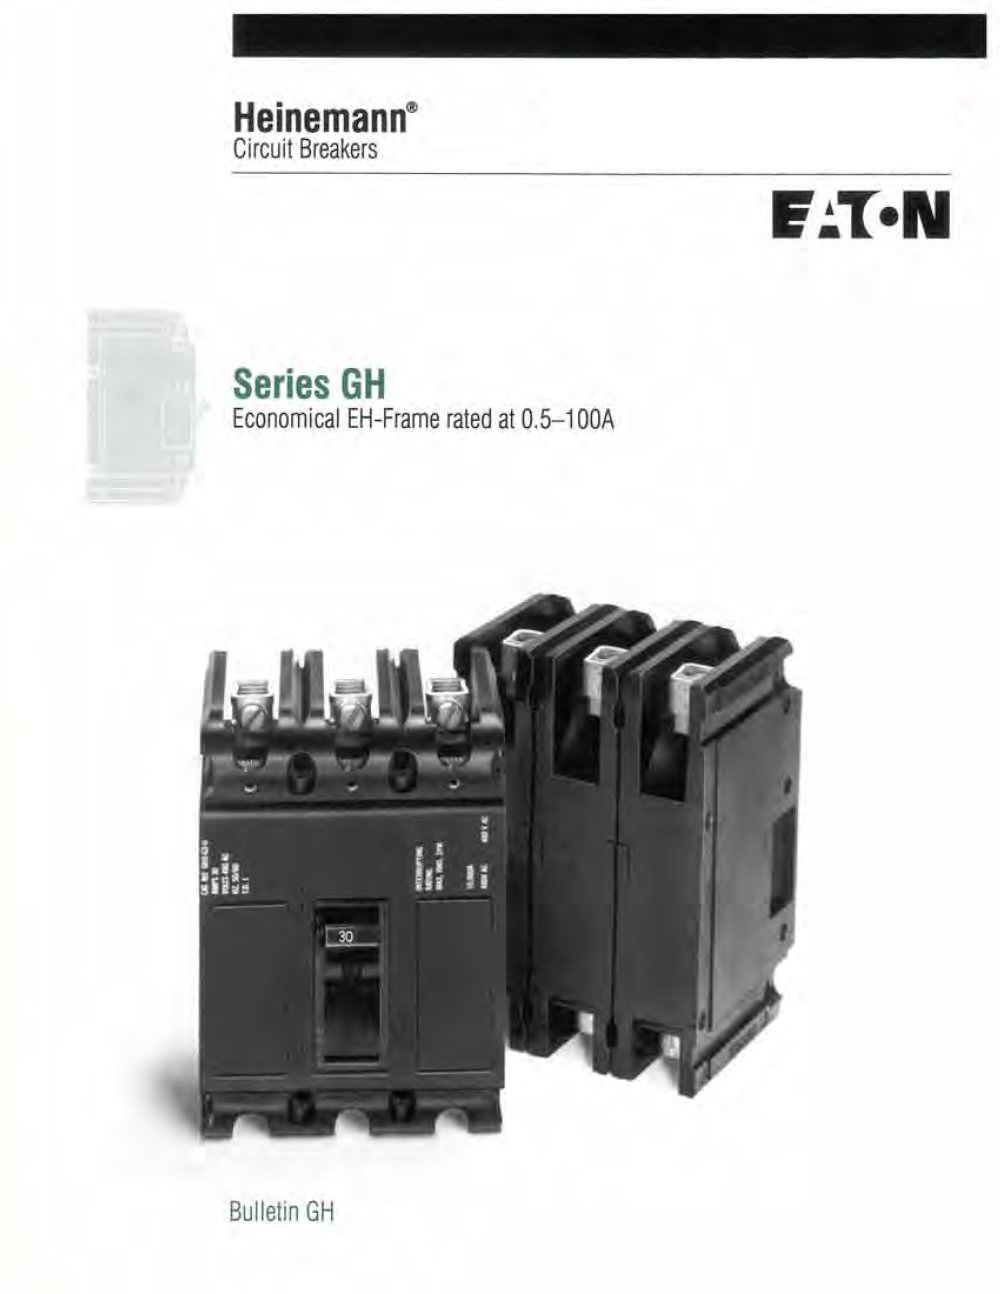 Series Gh Eaton Count Control Products Pdf Catalogue Technical Improvement Electrical Breakers Load Centers Fuses Circuit 1 8 Pages